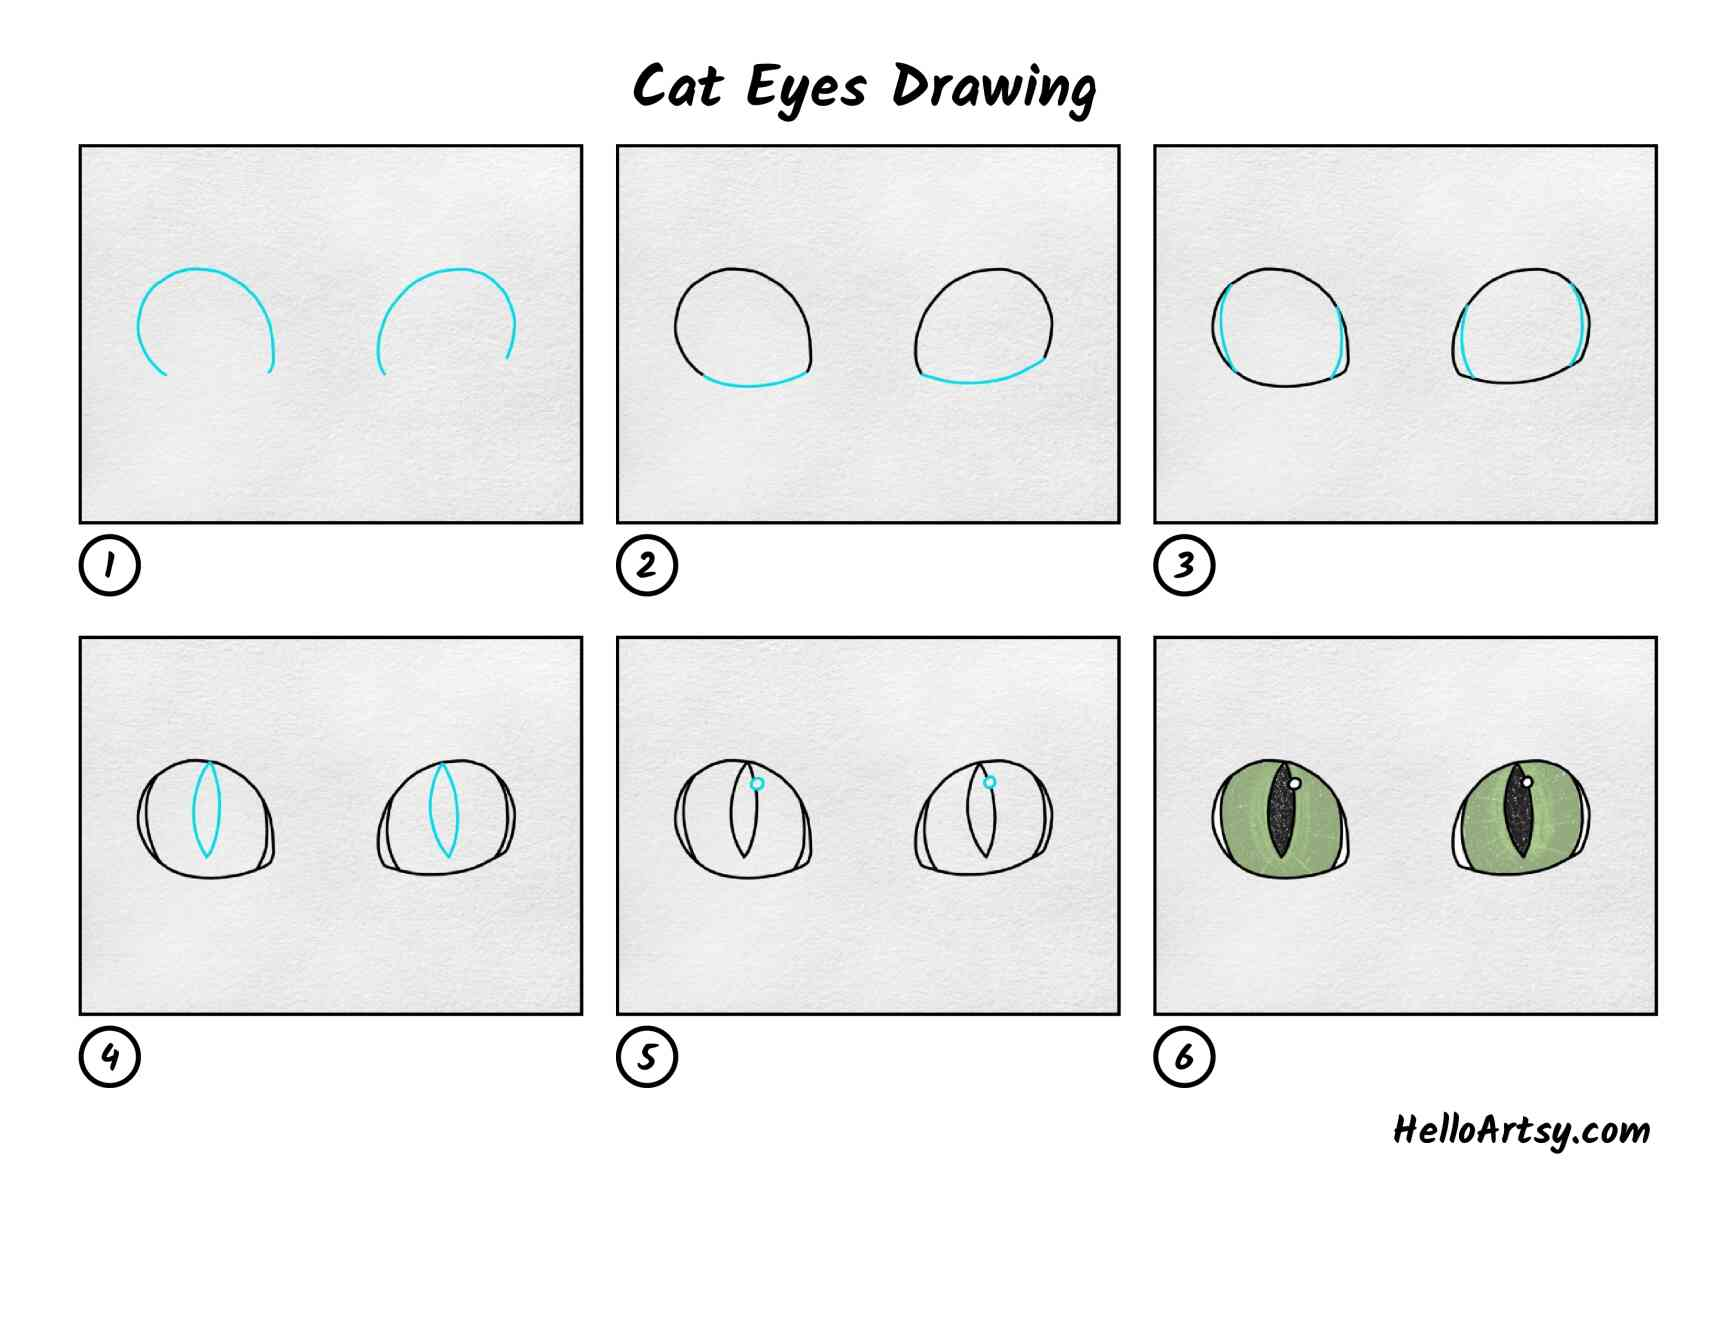 Cat Eyes Drawing: All Steps